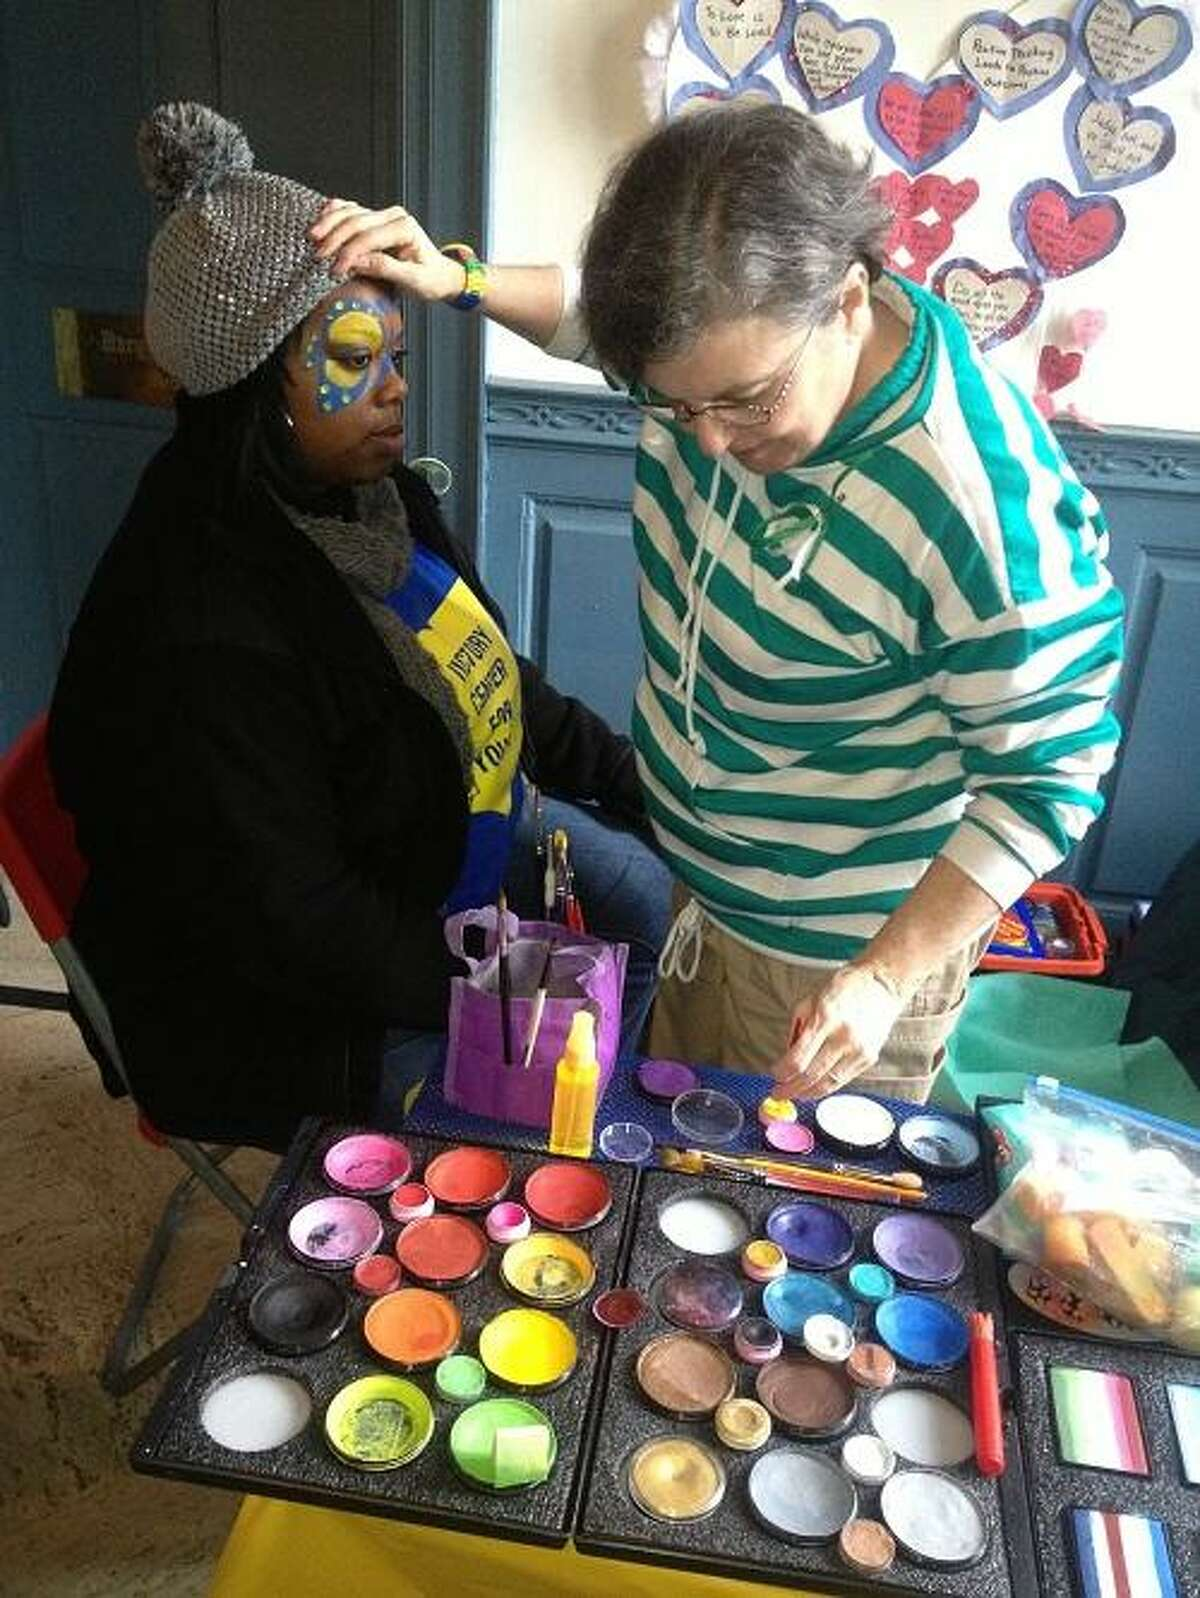 Pictured with painter Robbie Pack is Ericka Taylor of Pittsburgh, Pa. Pack, of Fairfield, Conn., came to Newtown to lift spirits by painting faces. Taylor came to Newtown with a friend to do outreach with Victory Center for Youth, of Cleveland.